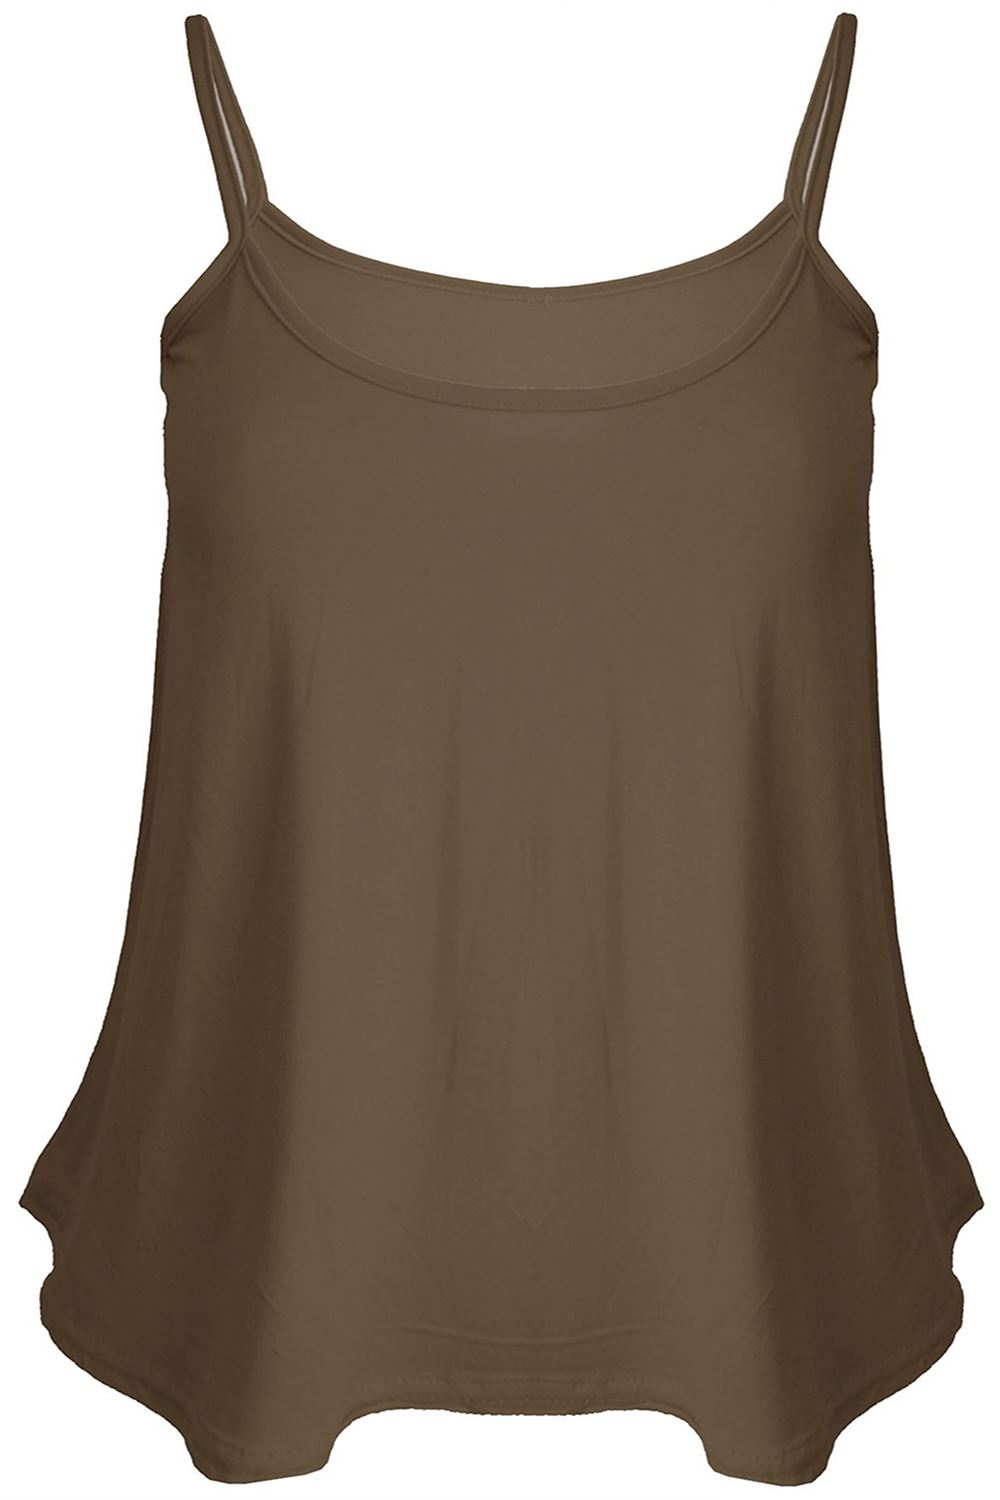 New Ladies Plain//Printed Swing Vest Sleeveless Top Strappy Cami Womens Plus Size